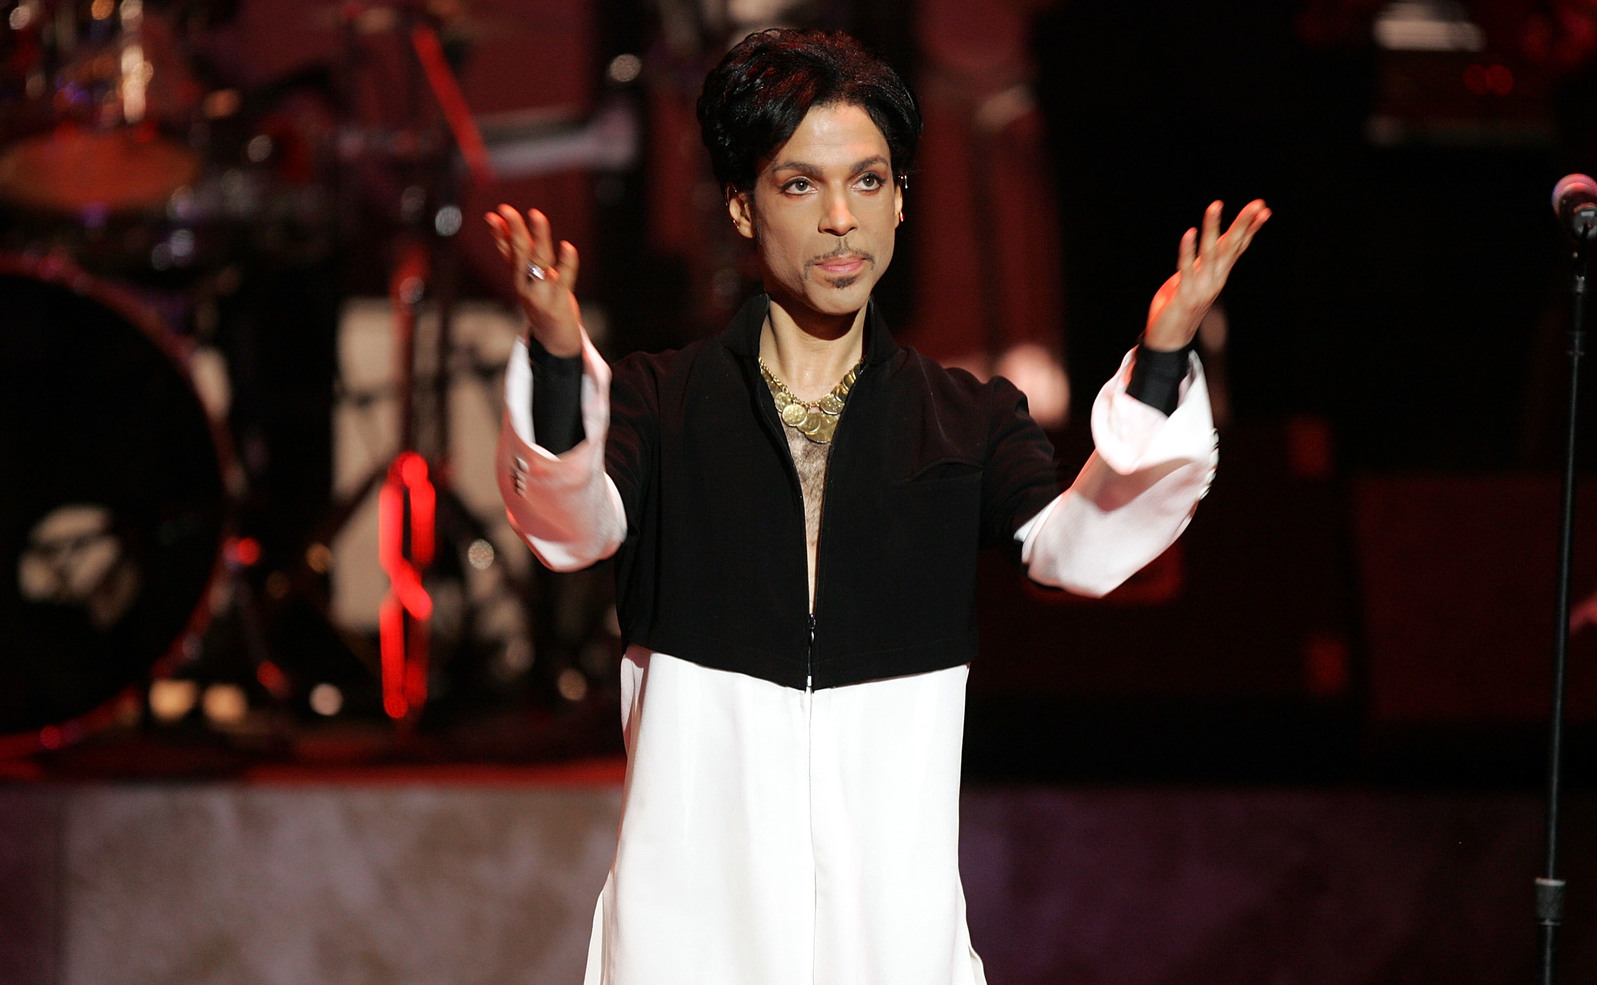 Prince (Fotó: Getty Images)